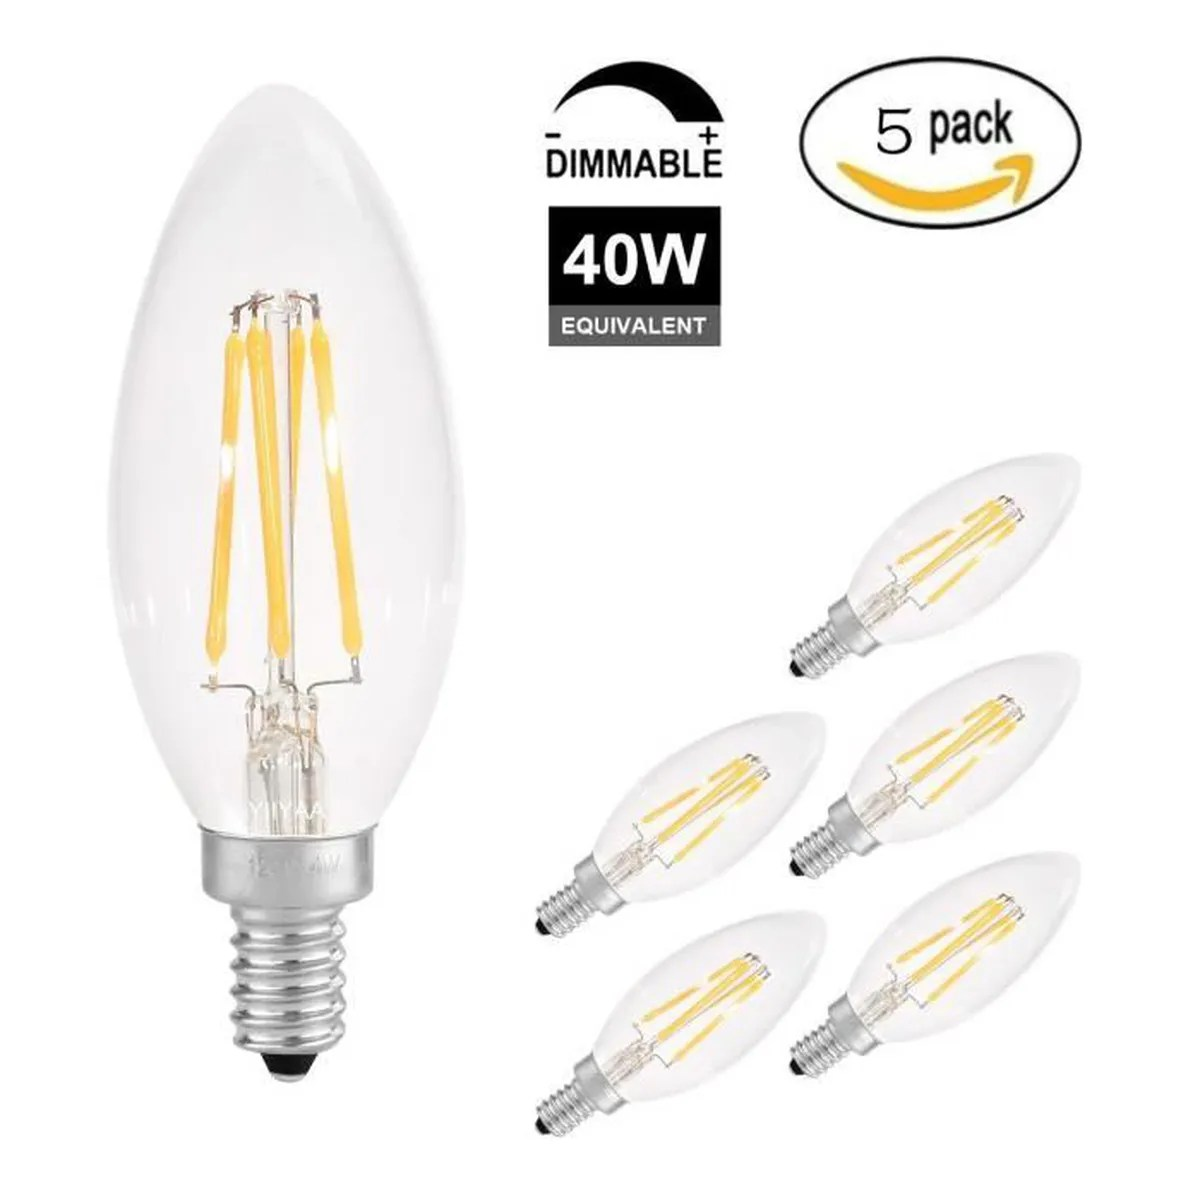 Ampoule Led Dimmable Chandelier Ampoule Led Dimmable E14 Base 4w 40w 230v 2700k Blanc